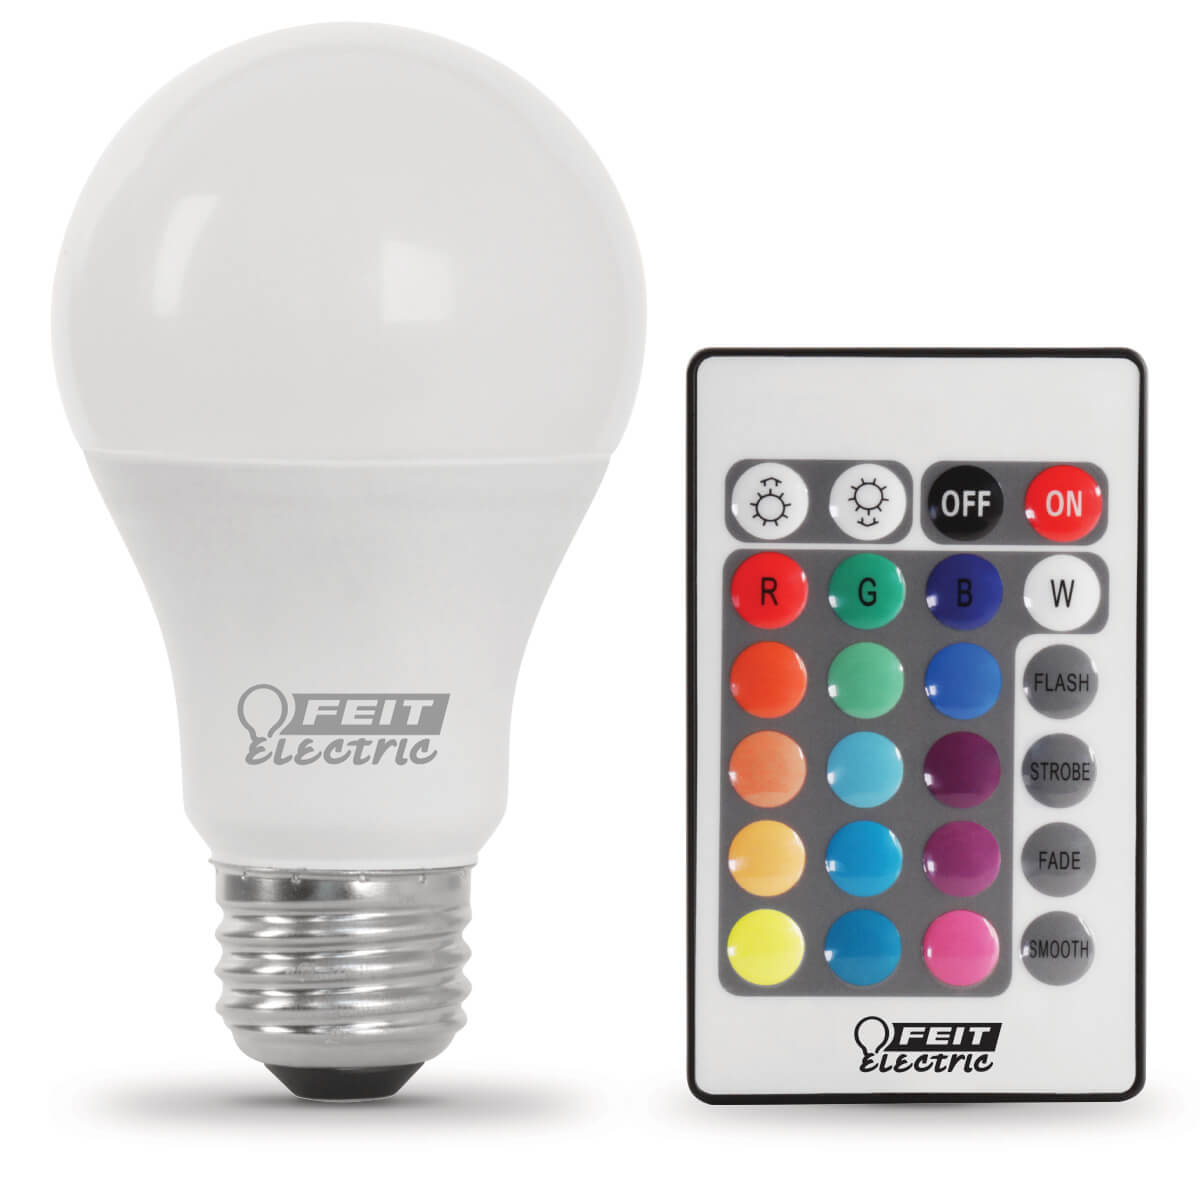 A19 Hp Party Ledg2 Bulb Remote Pack